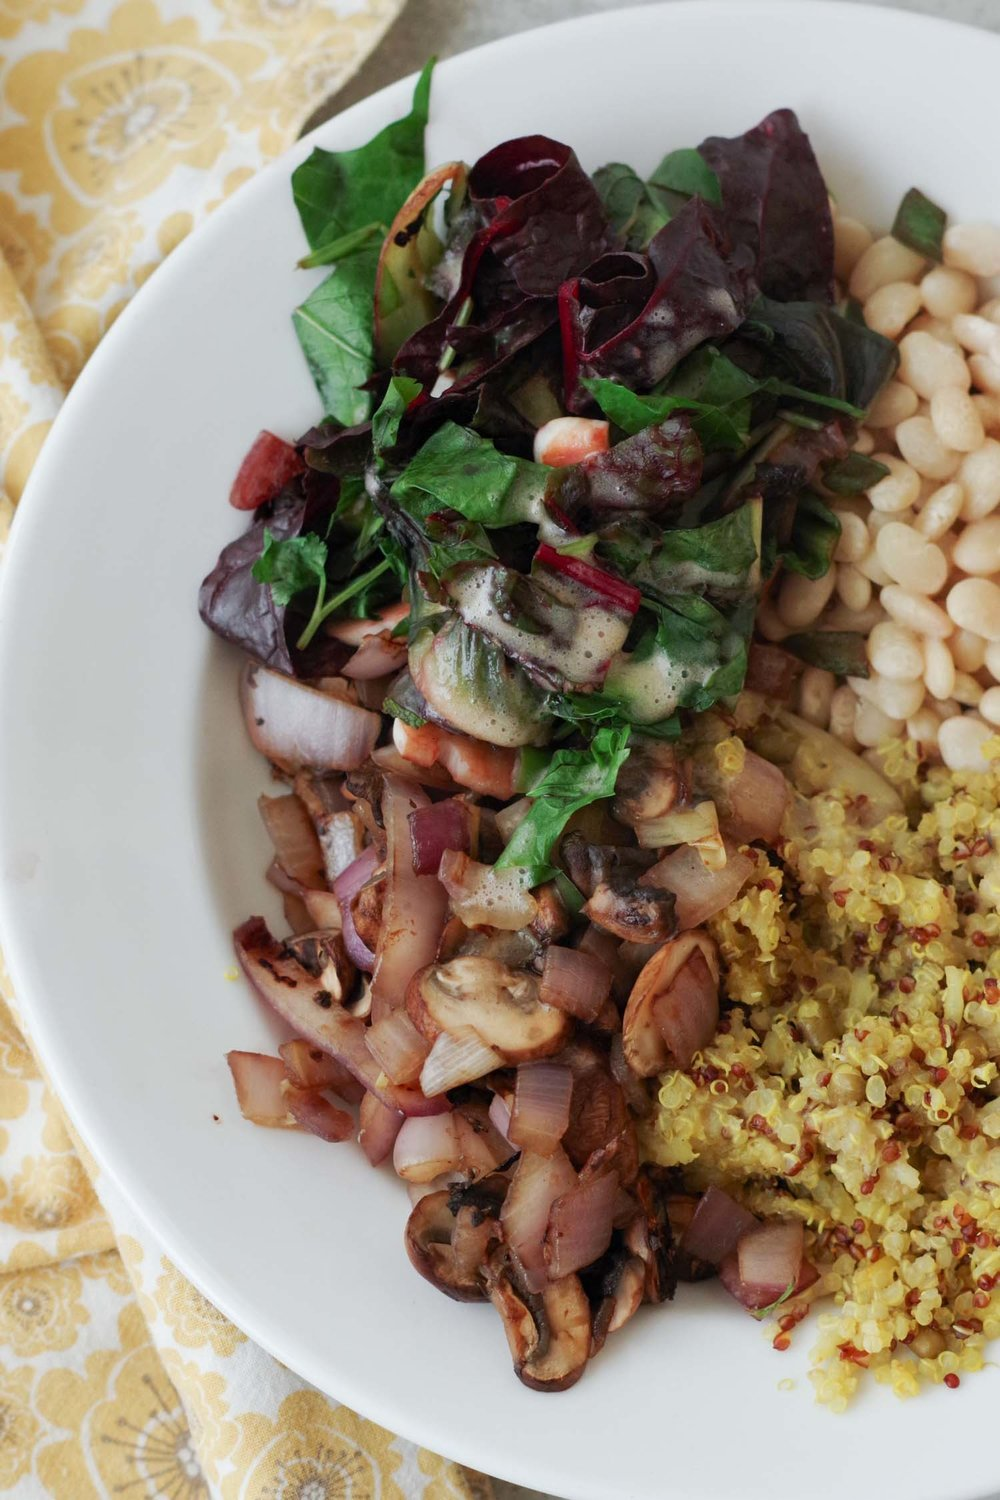 The Go-To Oil-Free Salad dressing adds flavor to Buddha Bowls, by Beautiful Ingredient